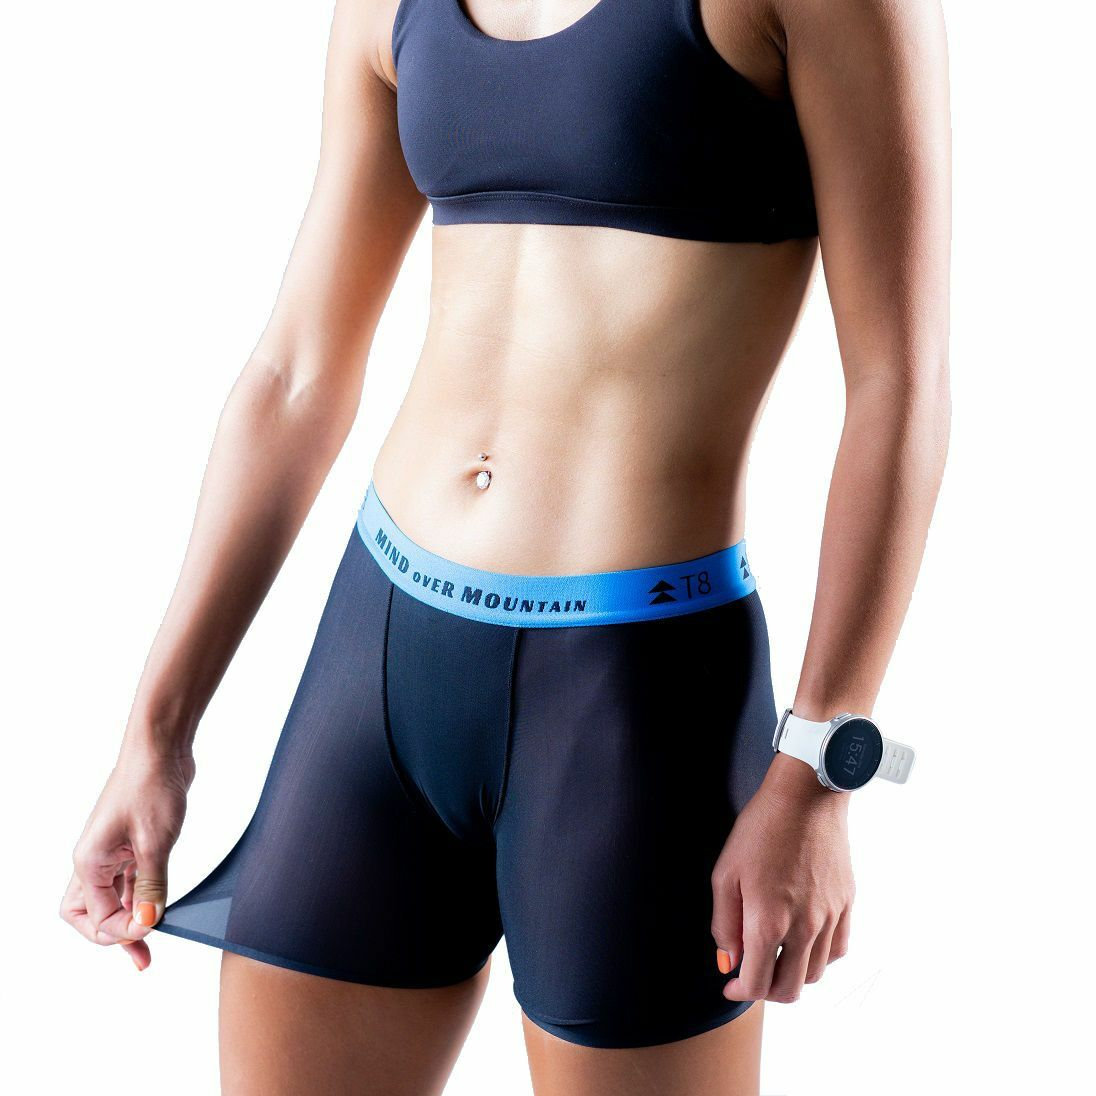 T8 / Women's Commandos Running Underwear